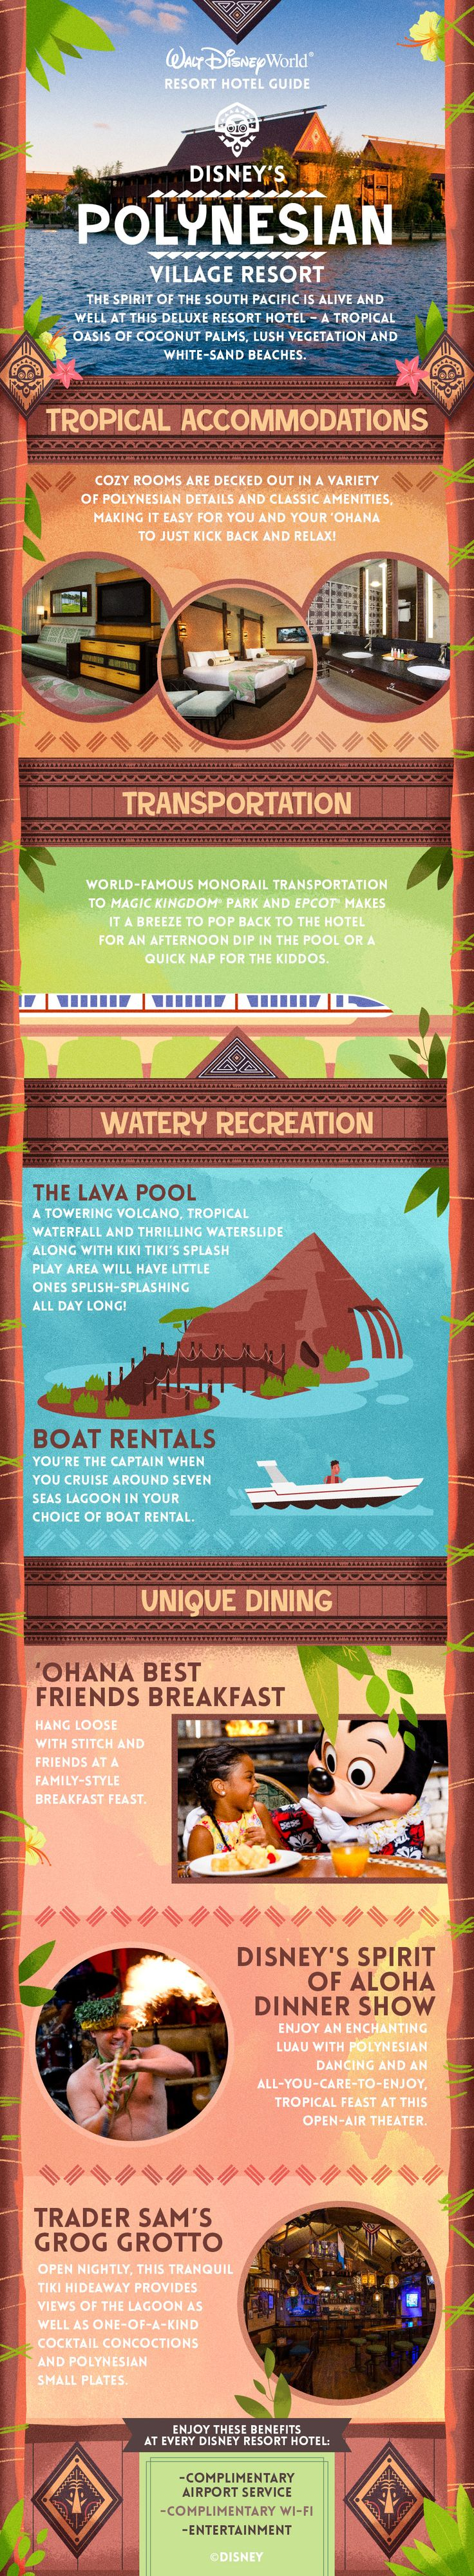 Celebrate the spirit of the South Pacific at this oasis.  Email amyh@livingwiththemagic.com to plan your next Disney Vacation